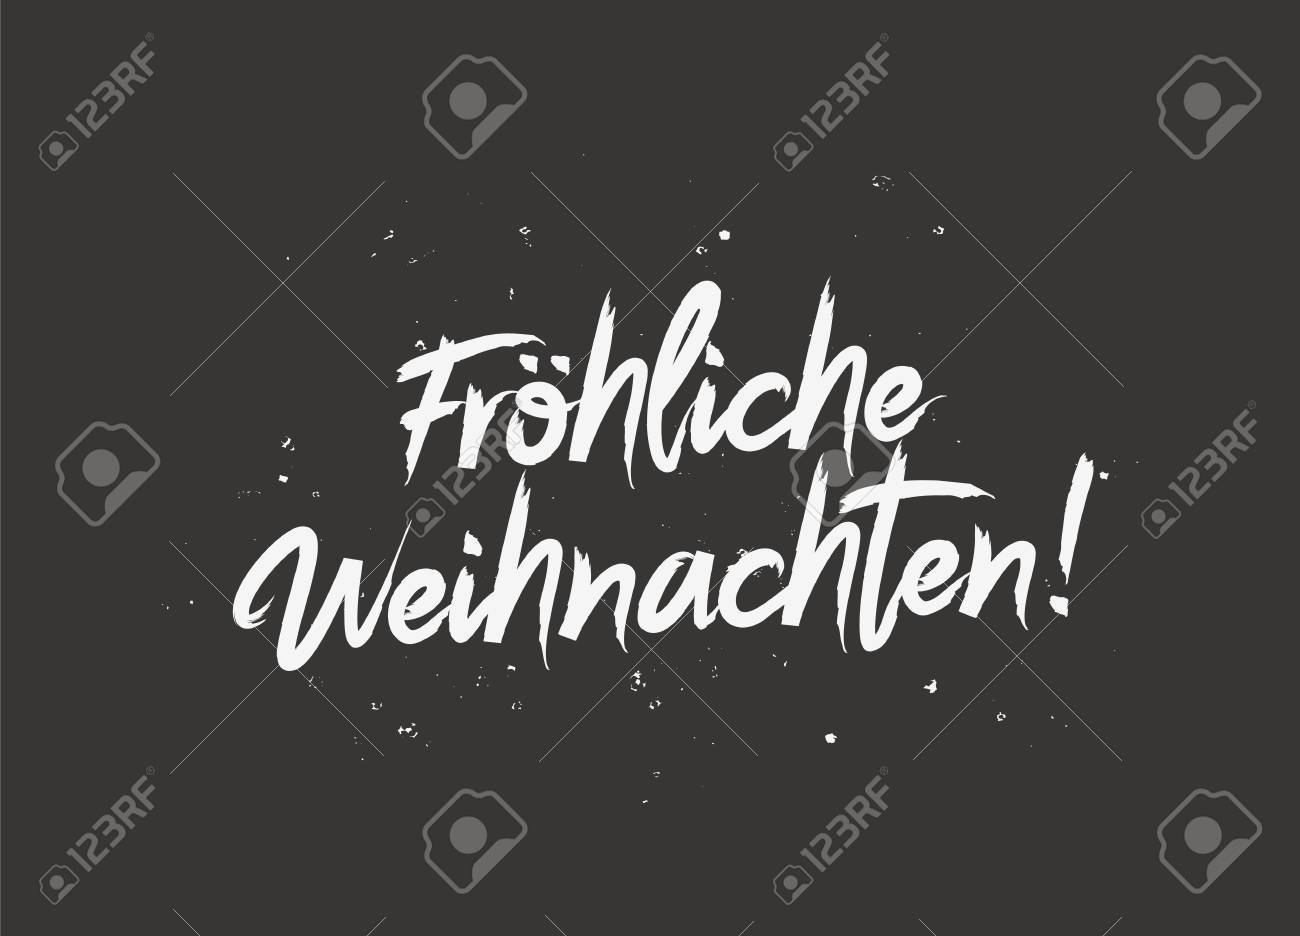 How Do You Say Merry Christmas In German.Merry Christmas On German Language Vector Illustration On A